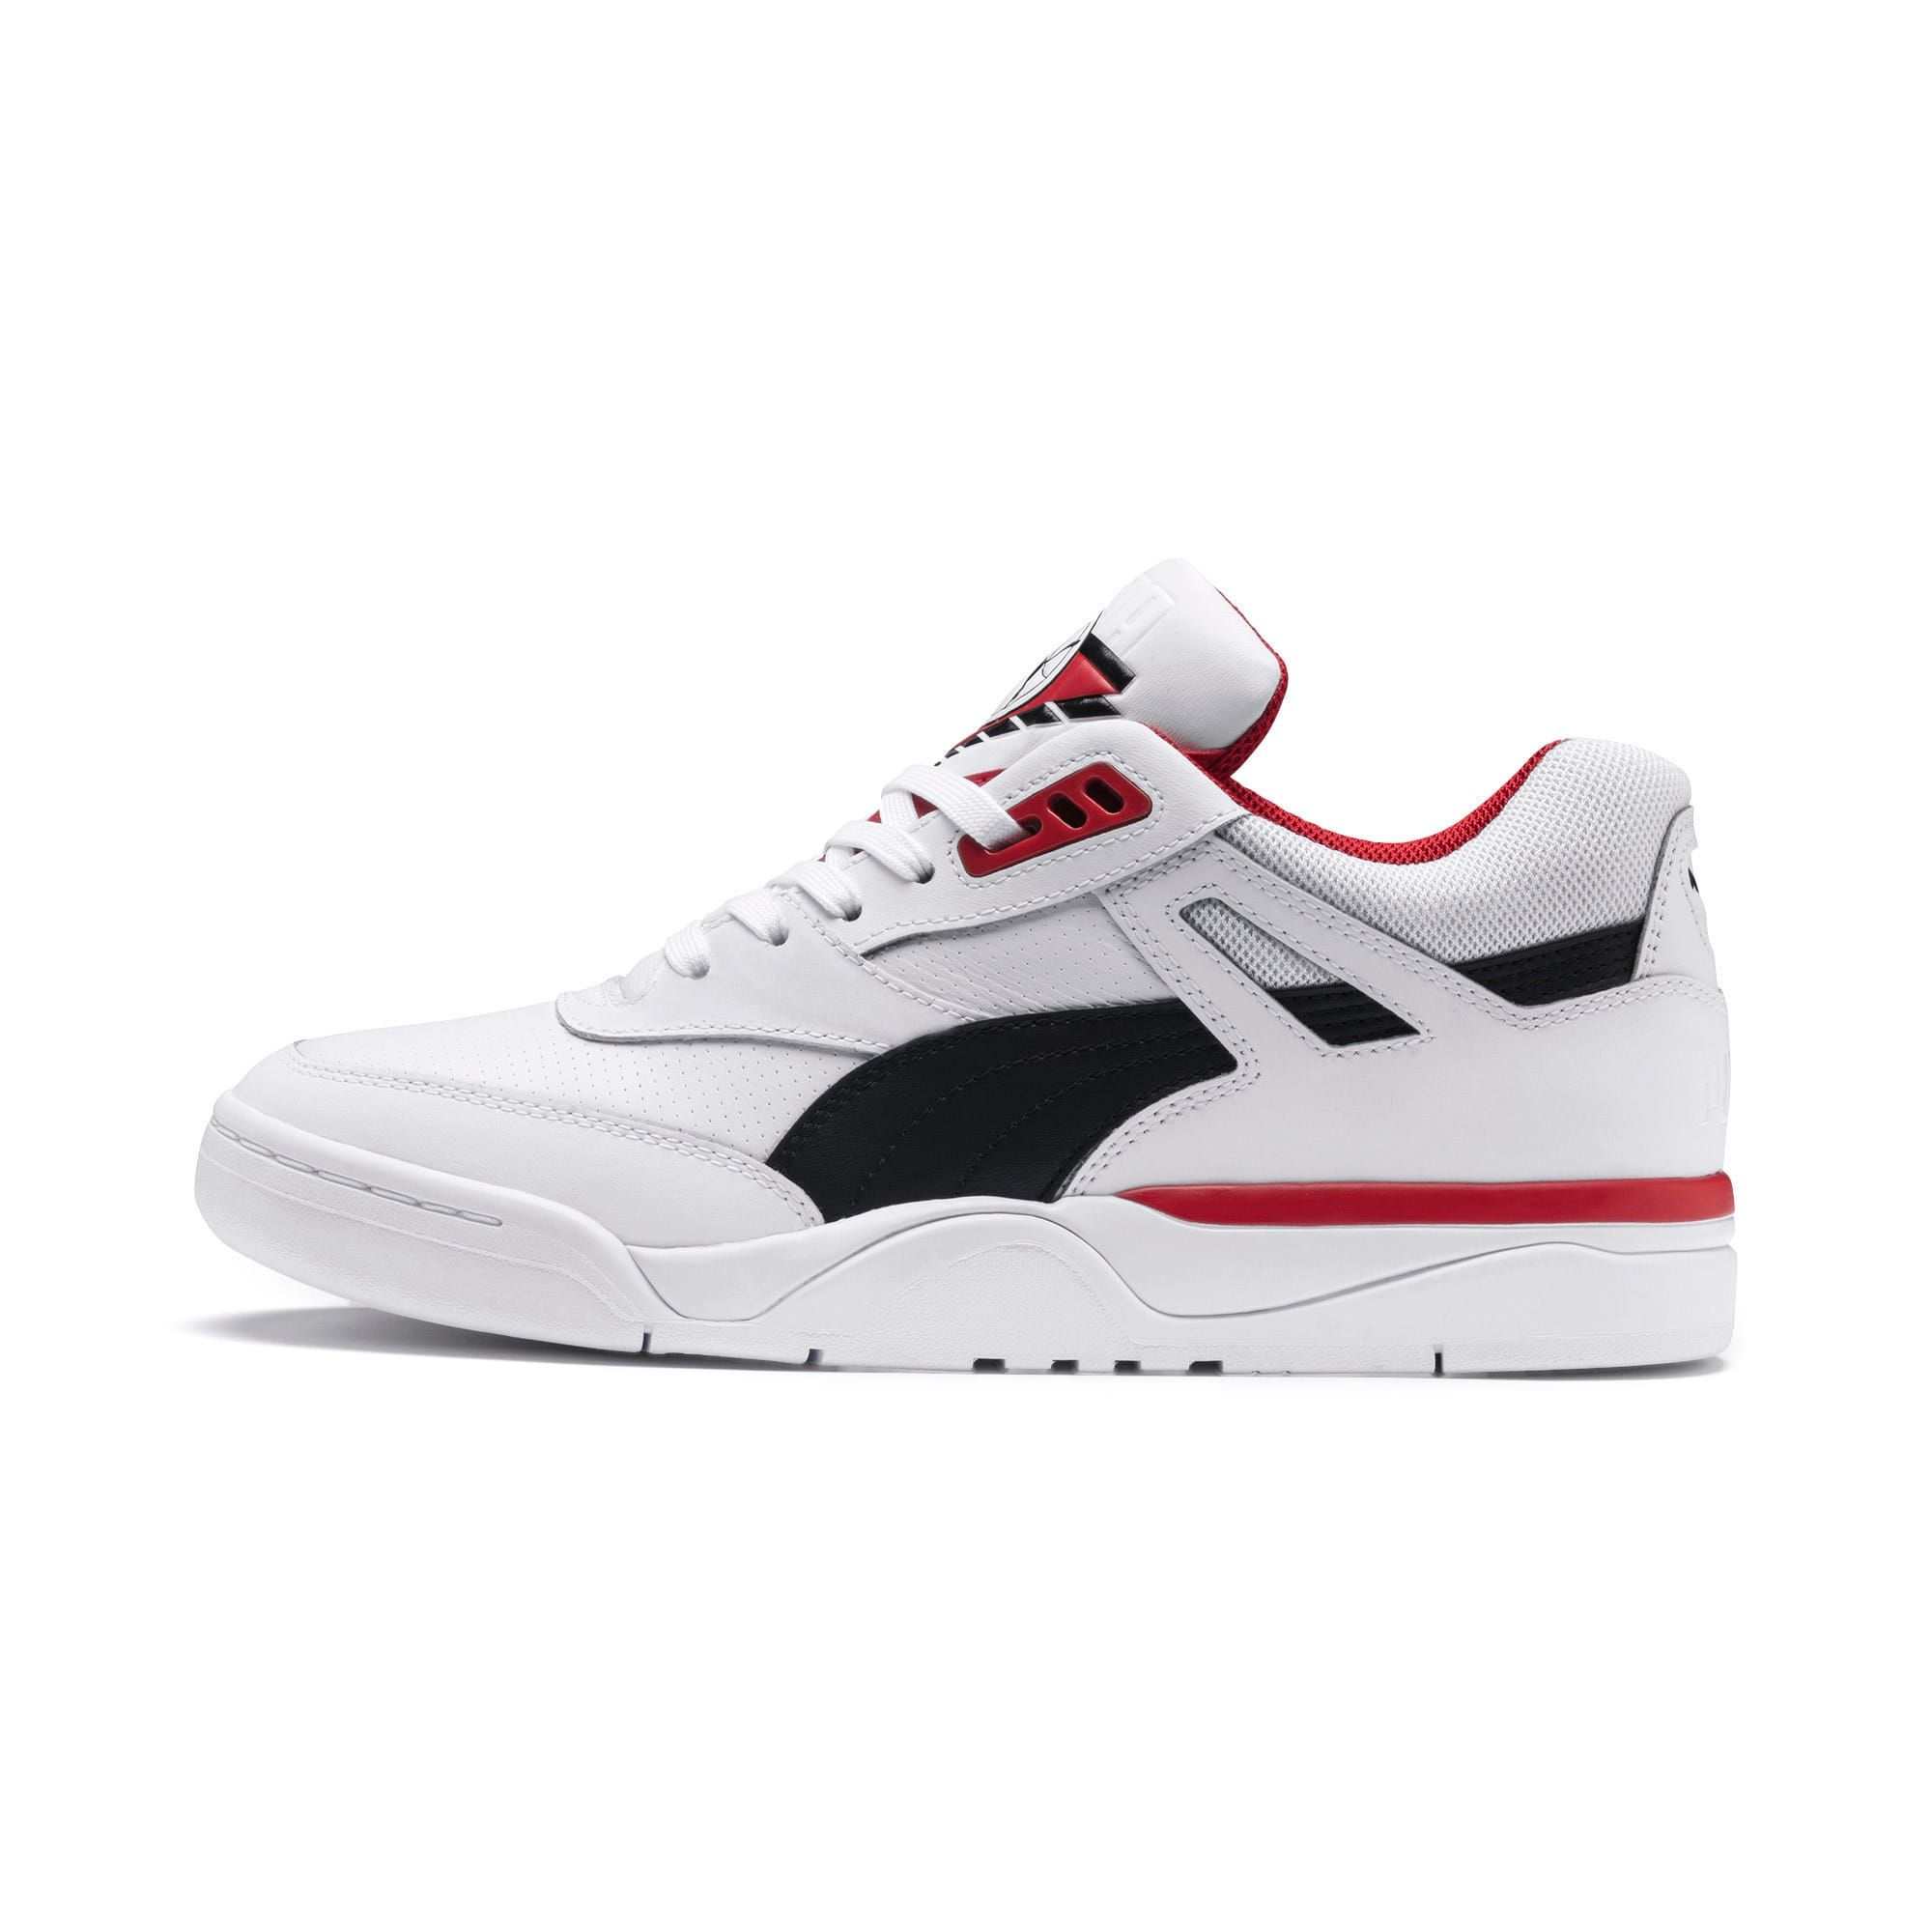 PUMA Palace Guard Basketball Trainers in White/Black/Red size 10.5 #shoewedges